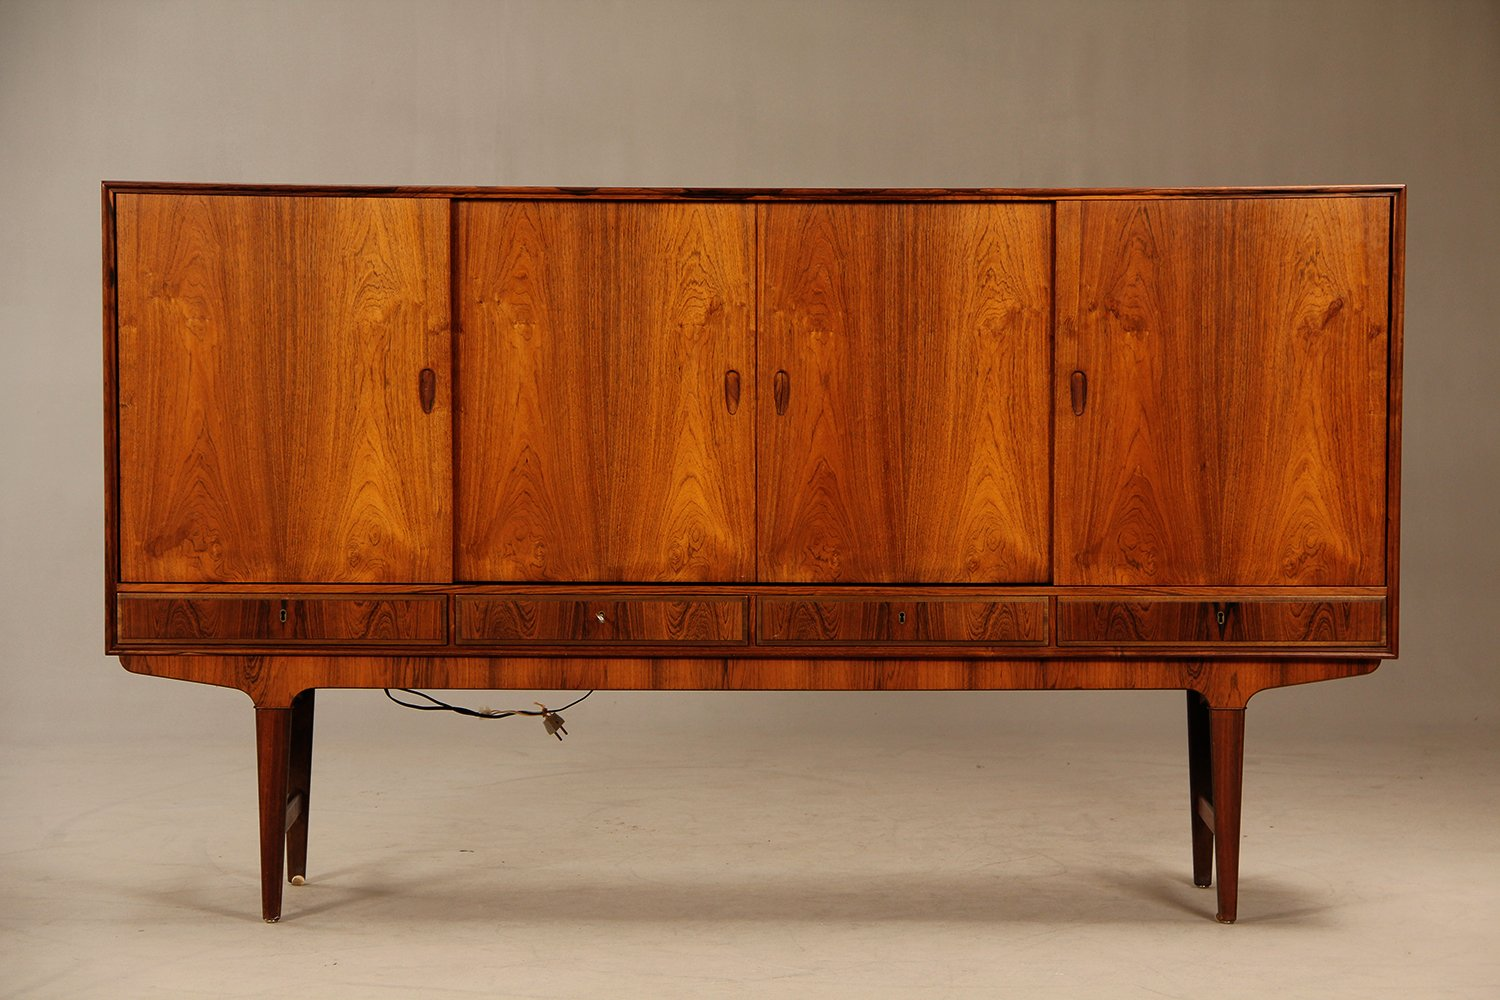 1960s Danish Credenza : Mid century danish rosewood credenza with bar cabinet s for